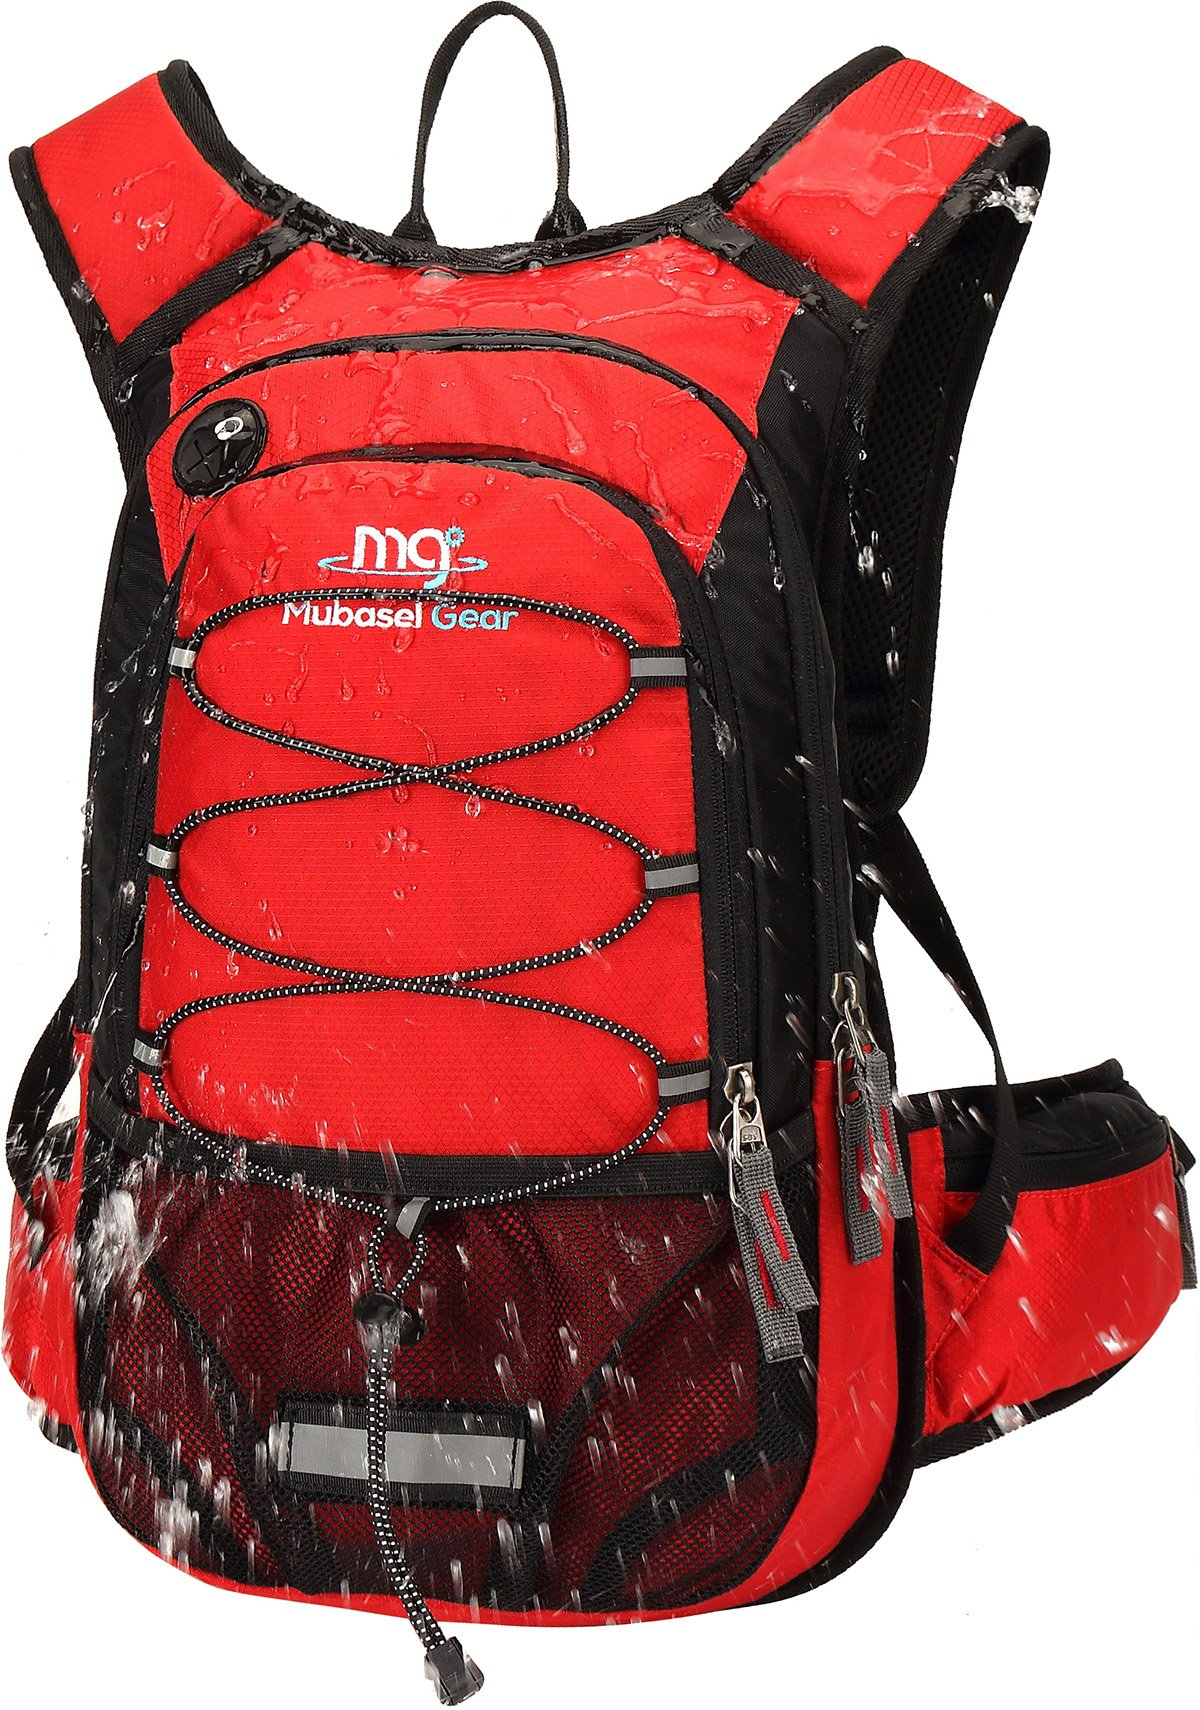 Mubasel Gear Insulated Hydration Backpack Pack with 2L BPA Free Bladder - Keeps Liquid Cool up to 4 Hours - for Running, Hiking, Cycling, Camping (Red) by Mubasel Gear